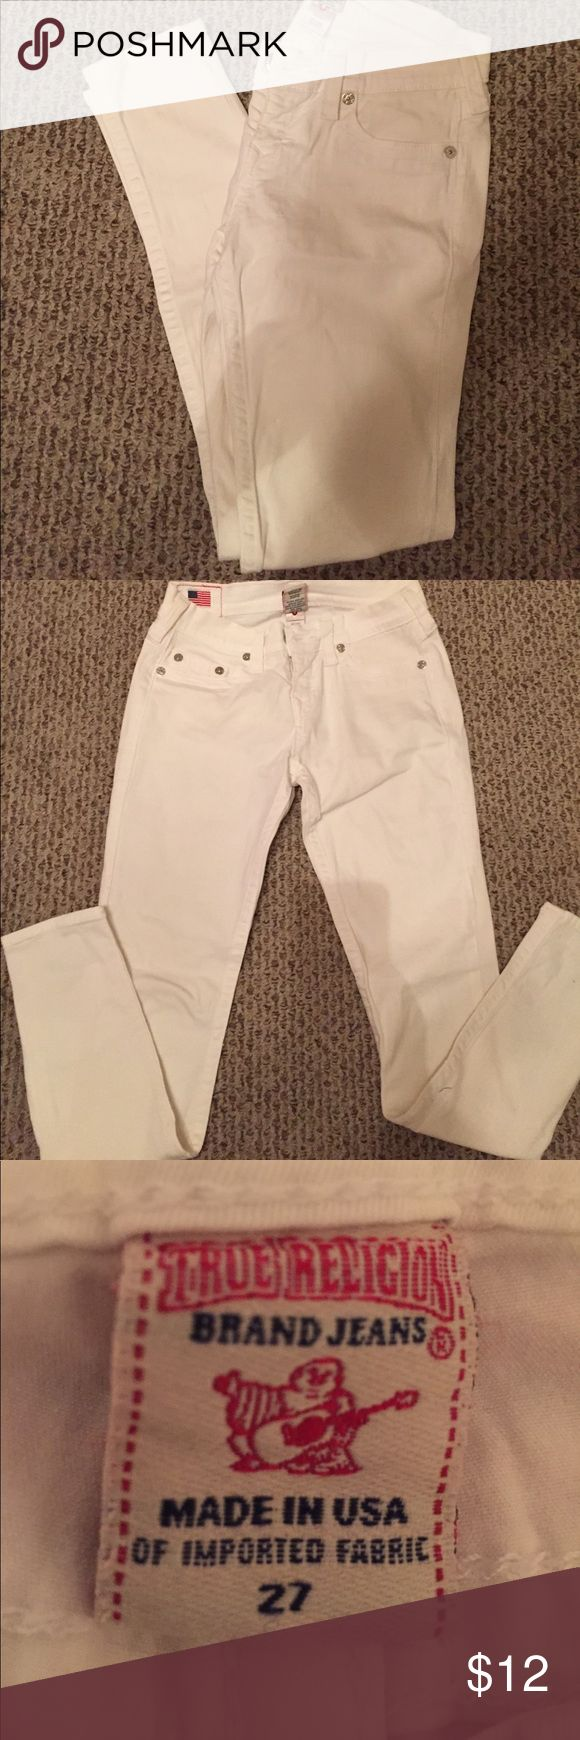 TRUE RELIGION STRAIGHT LEG JEANS 💞 TRUE RELIGION STRAIGHT LEG JEANS IN WHITE. NO STAINS, TEARS OR RIPS. SMOKE AND PET FREE HOUSE ALTHOUGH WE LOVE ANIMALS....❤️ True Religion Jeans Straight Leg